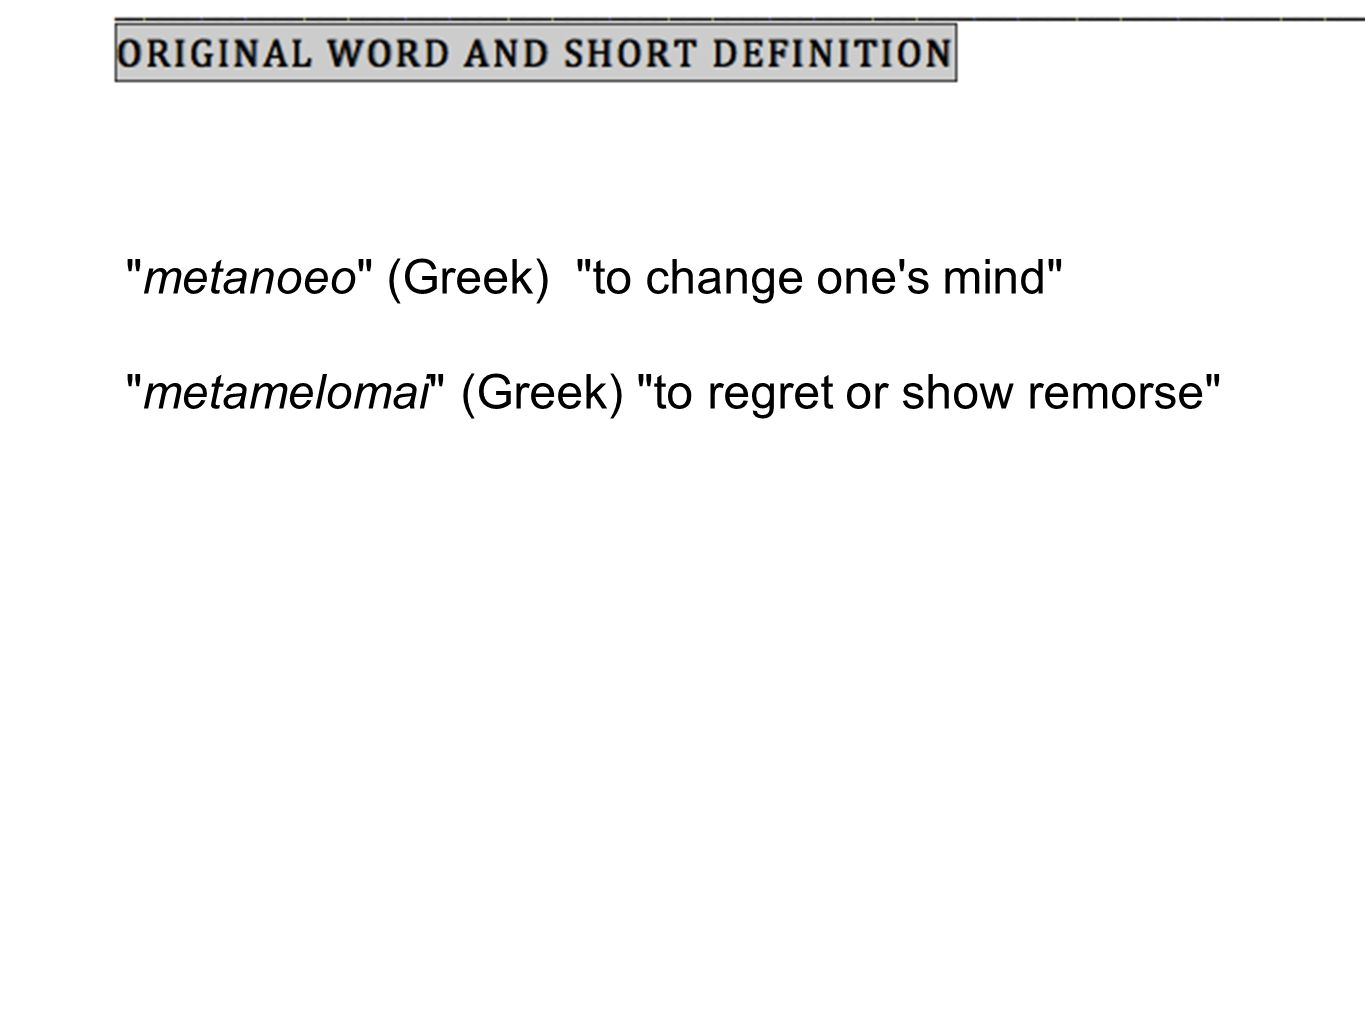 Repent definition greek